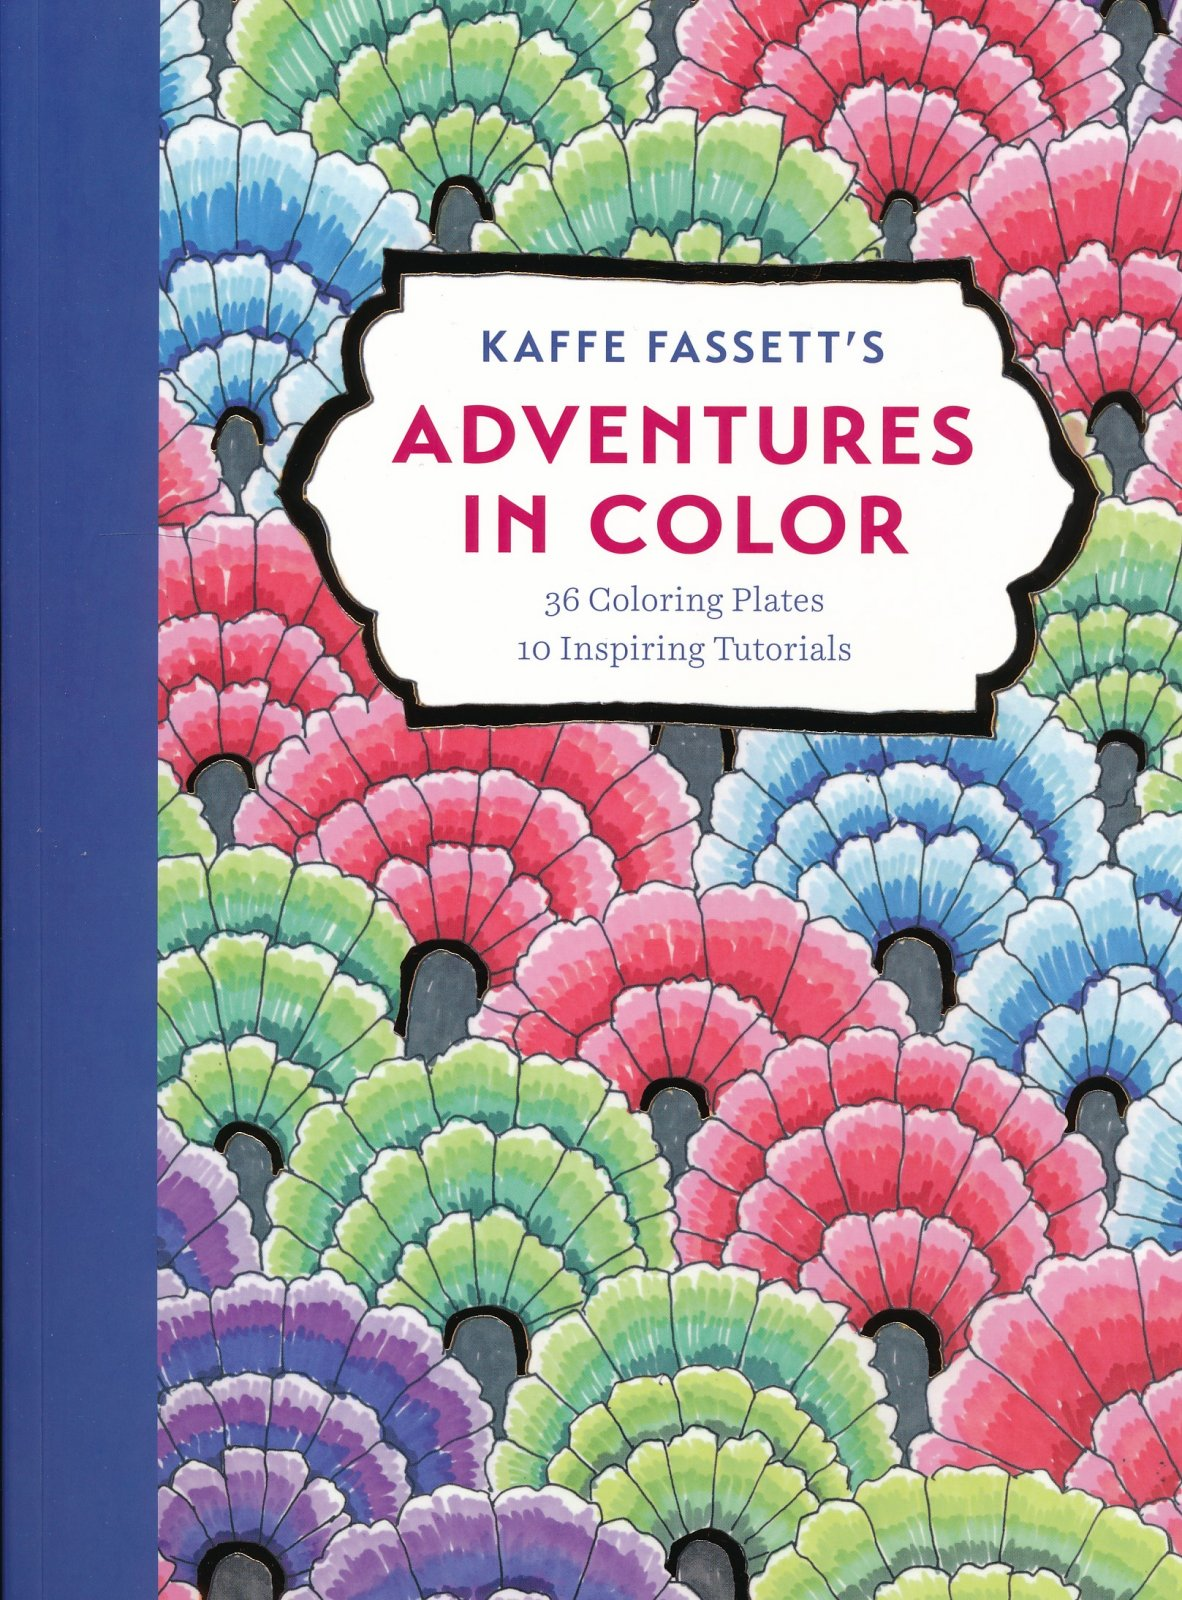 Kaffe Fassett: Adventures in Color - Coloring Book